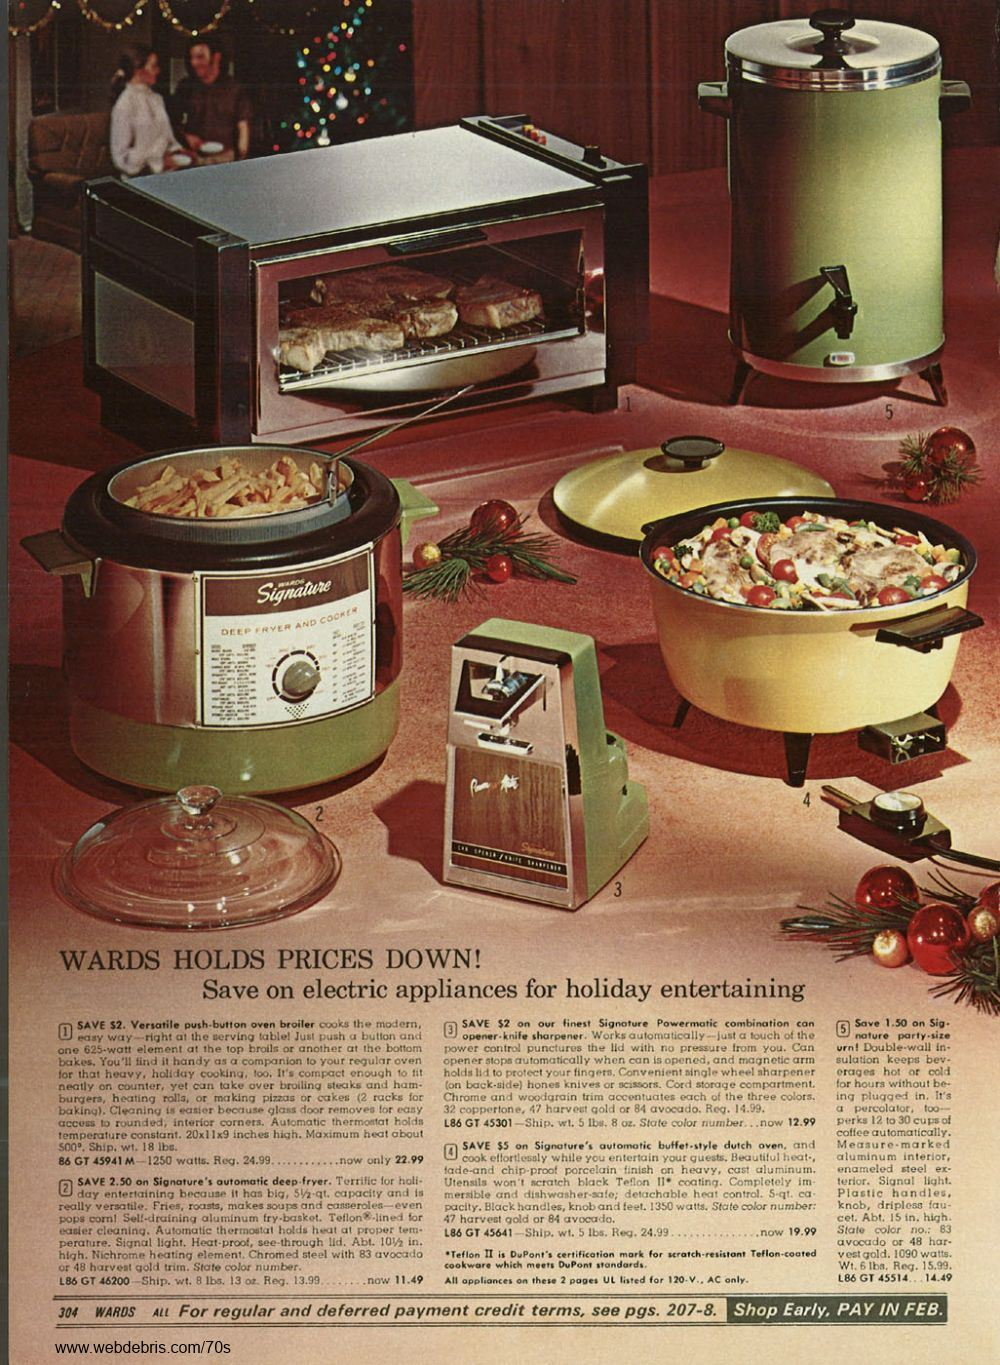 household_appliances_from_1970_3.jpg